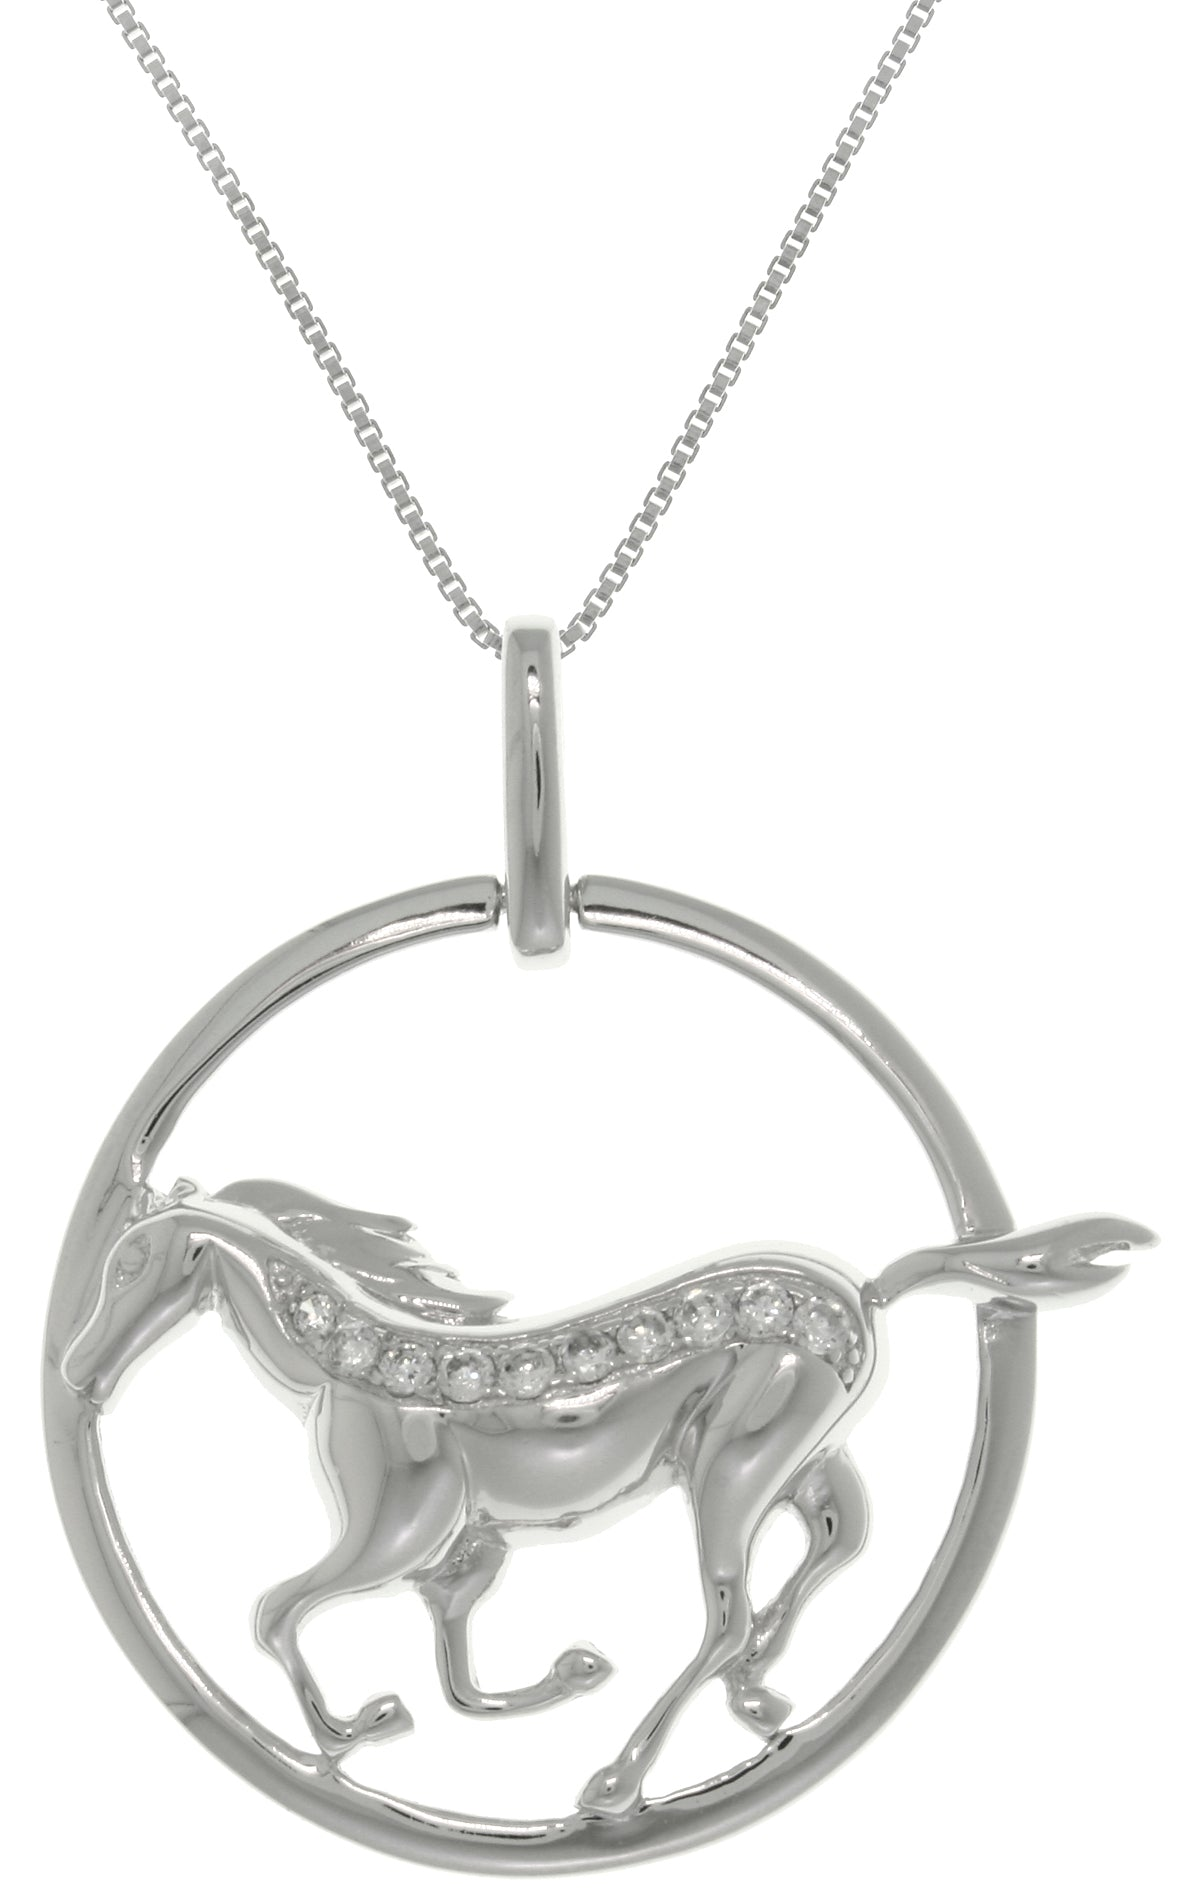 Jewelry Trends Sterling Silver Running Horse with CZ Crystals in Circle Pendant on 18 Inch Box Chain Necklace